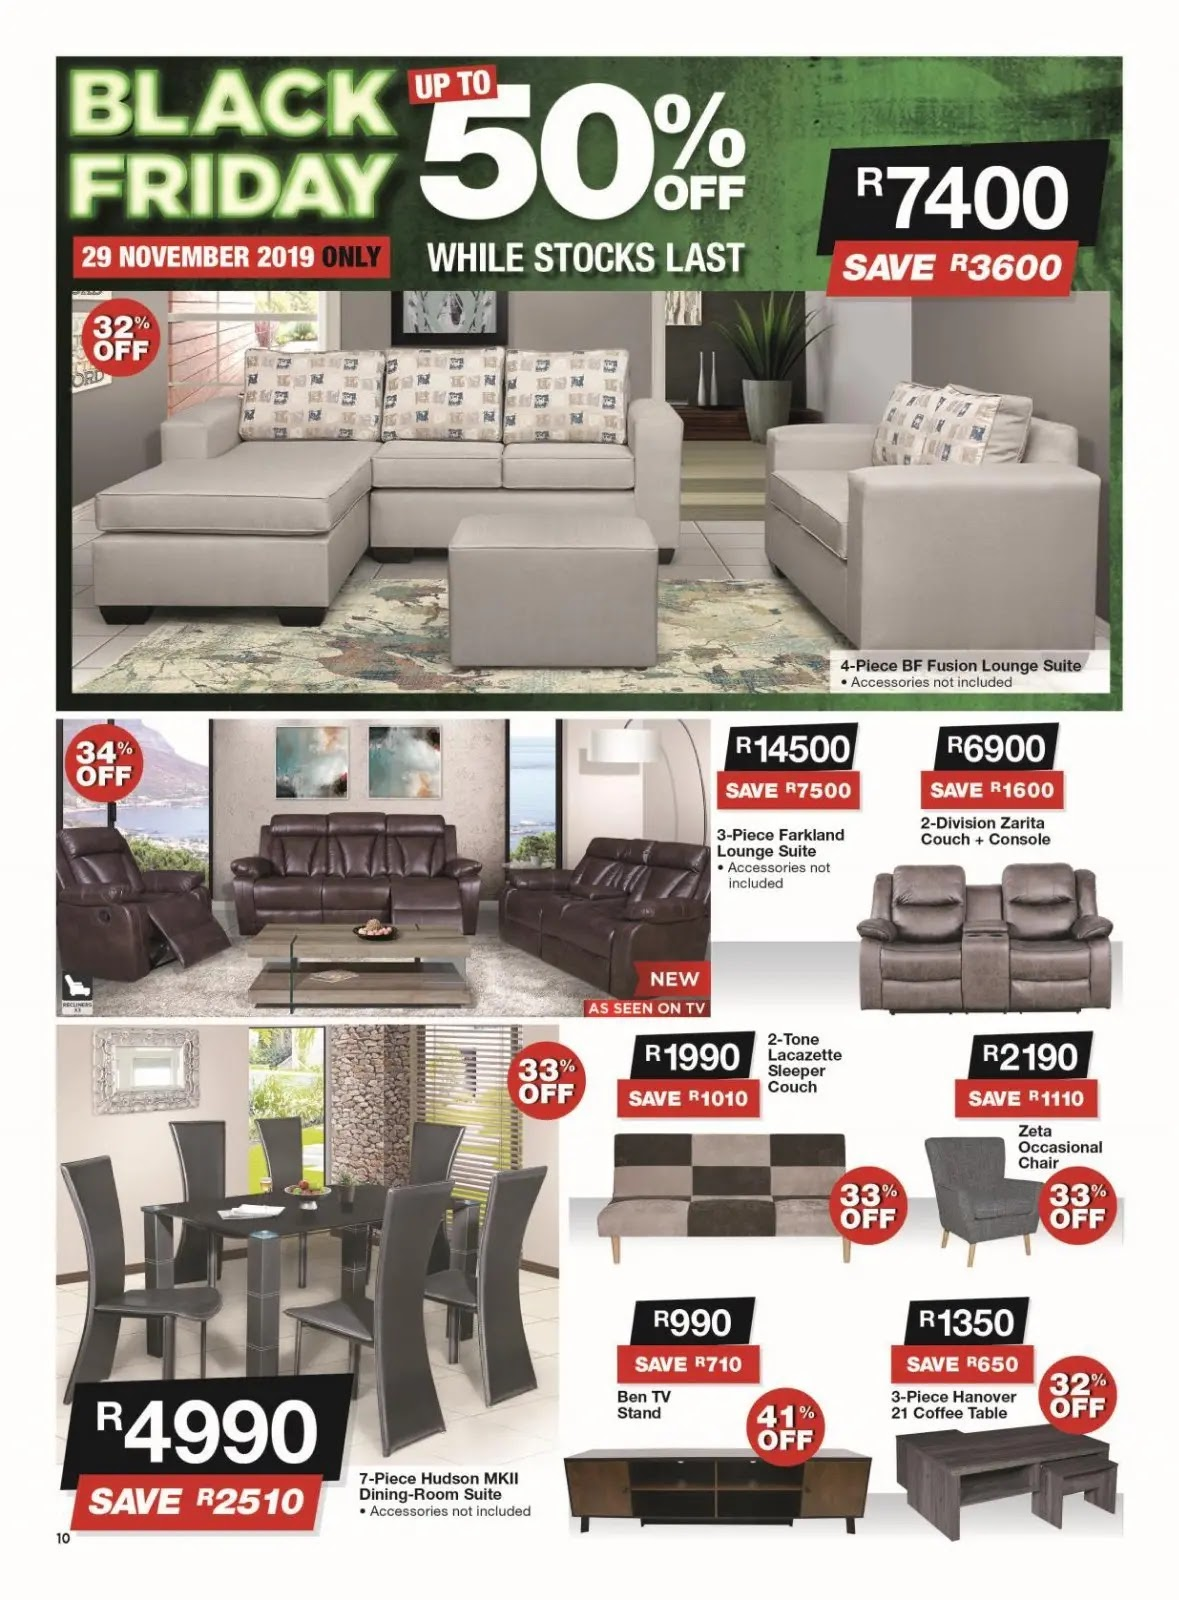 House & Home Black Friday Deals Page 6